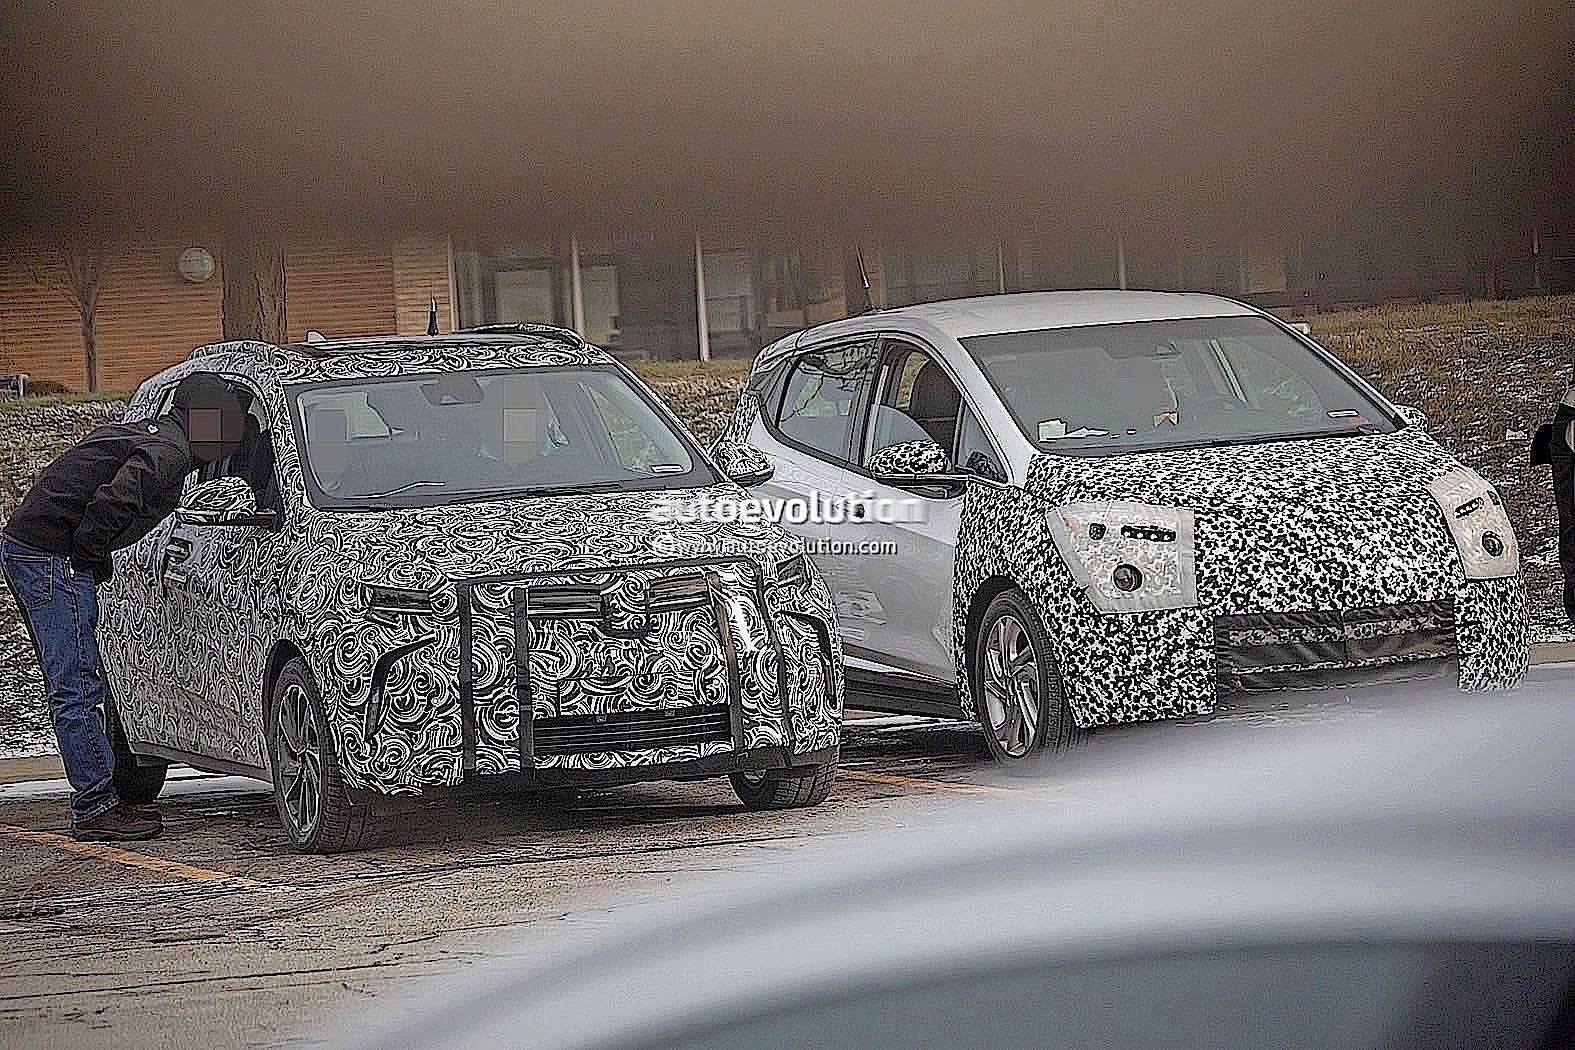 2021 Chevrolet Bolt EUV Crossover Has Ground Clearance ...